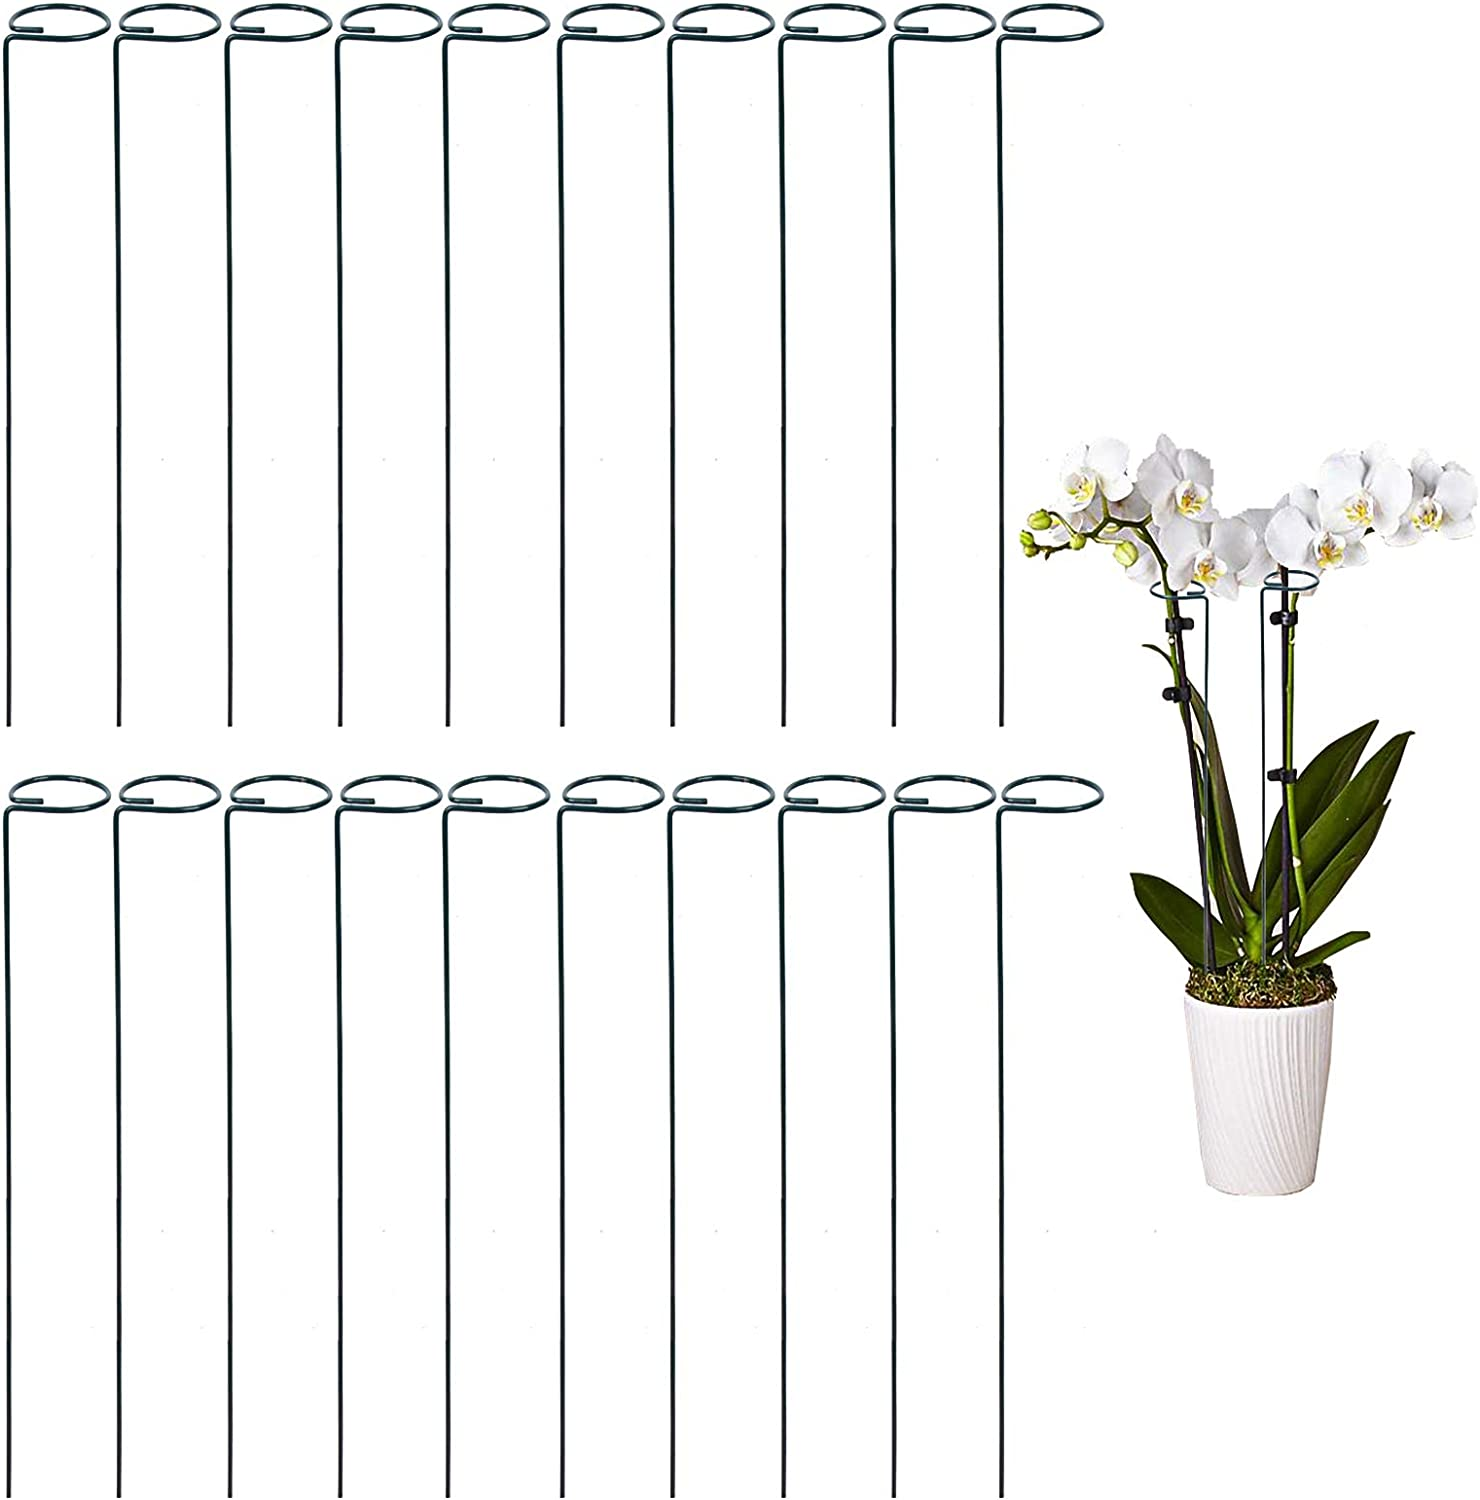 Amazon Com Tingyuan 36 Inches Single Stem Plant Support Stakes Steel Garden Stakes Pack Of 20 Garden Outdoor